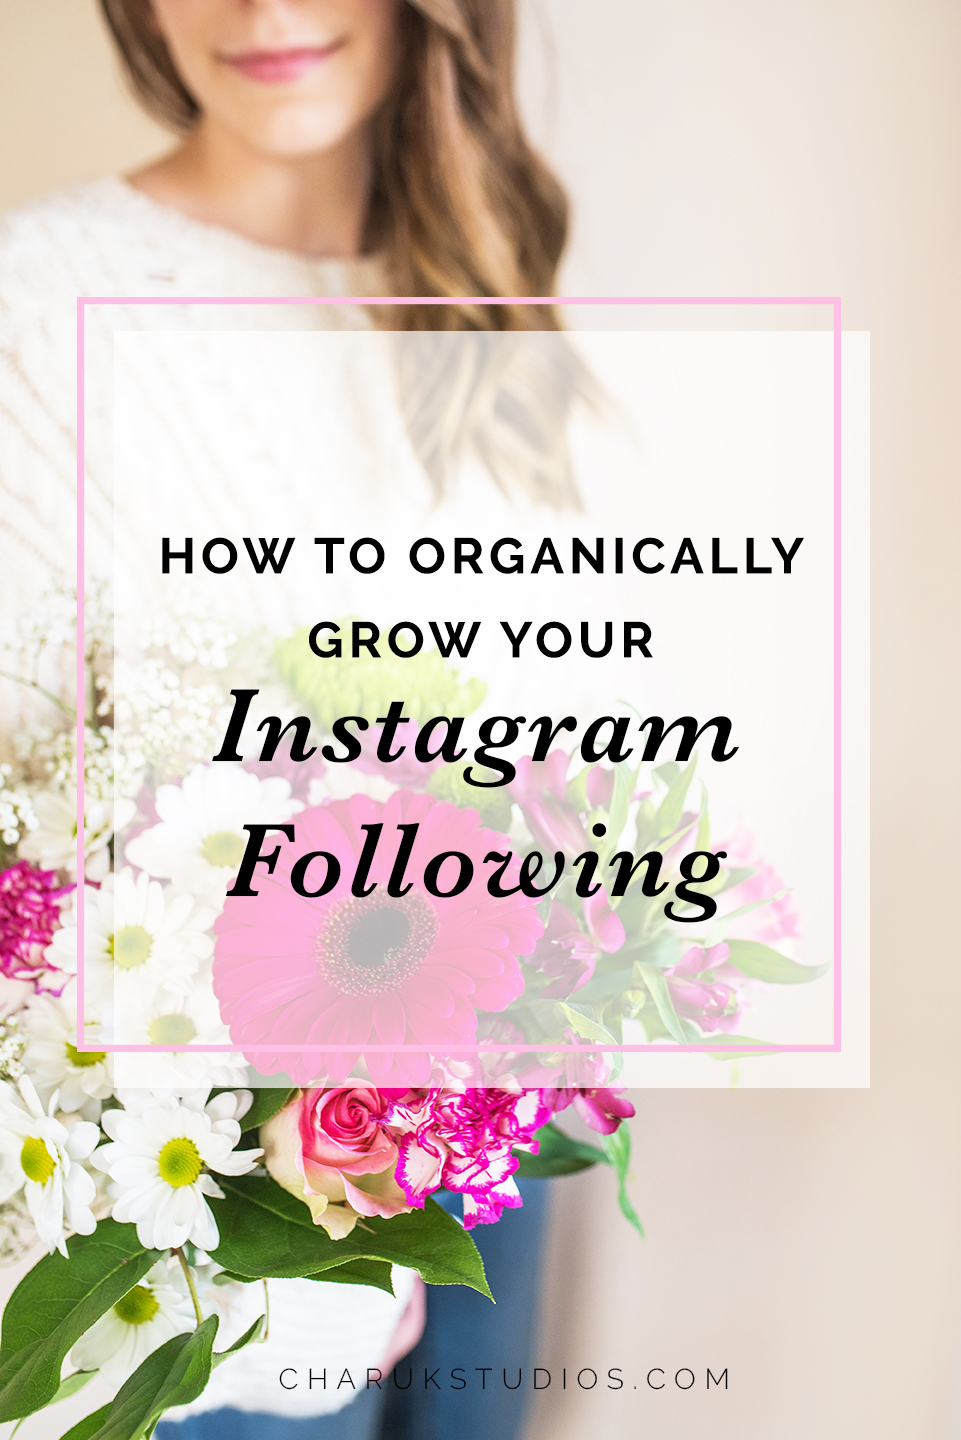 How to Organically Grow Your Instagram Following by Charuk Studios